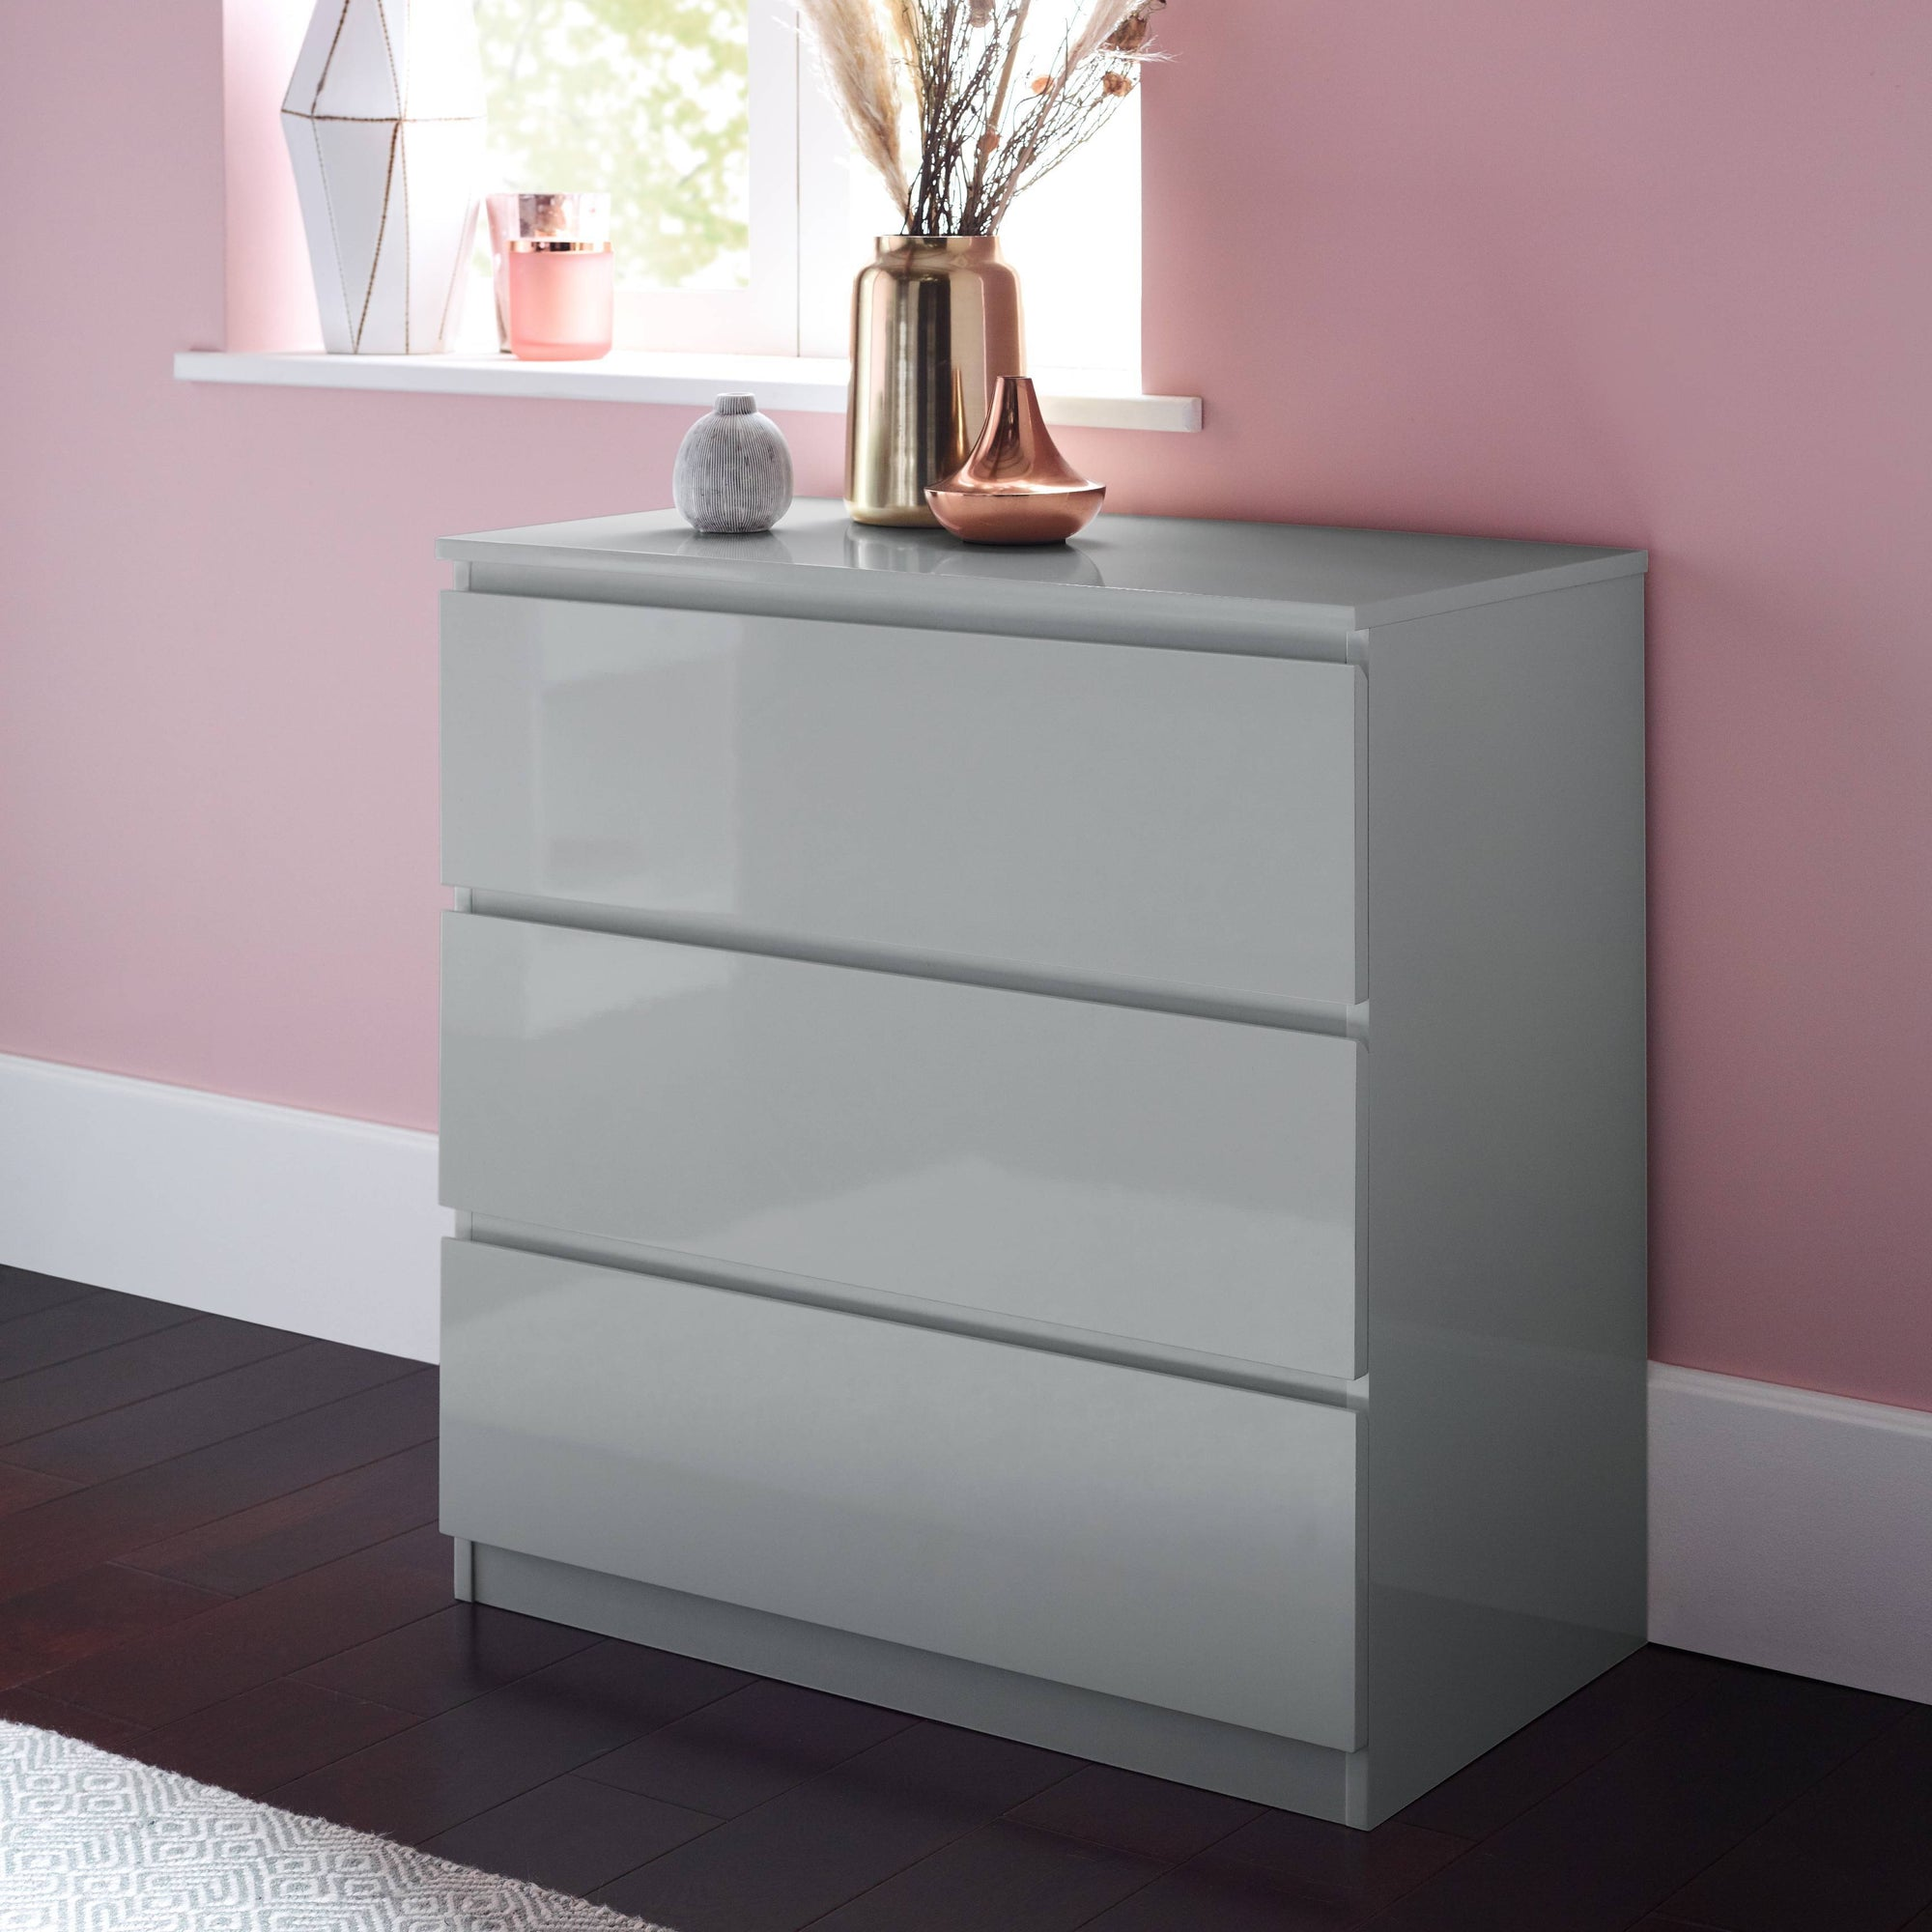 Clemmie high gloss chest of drawers - grey - Laura James